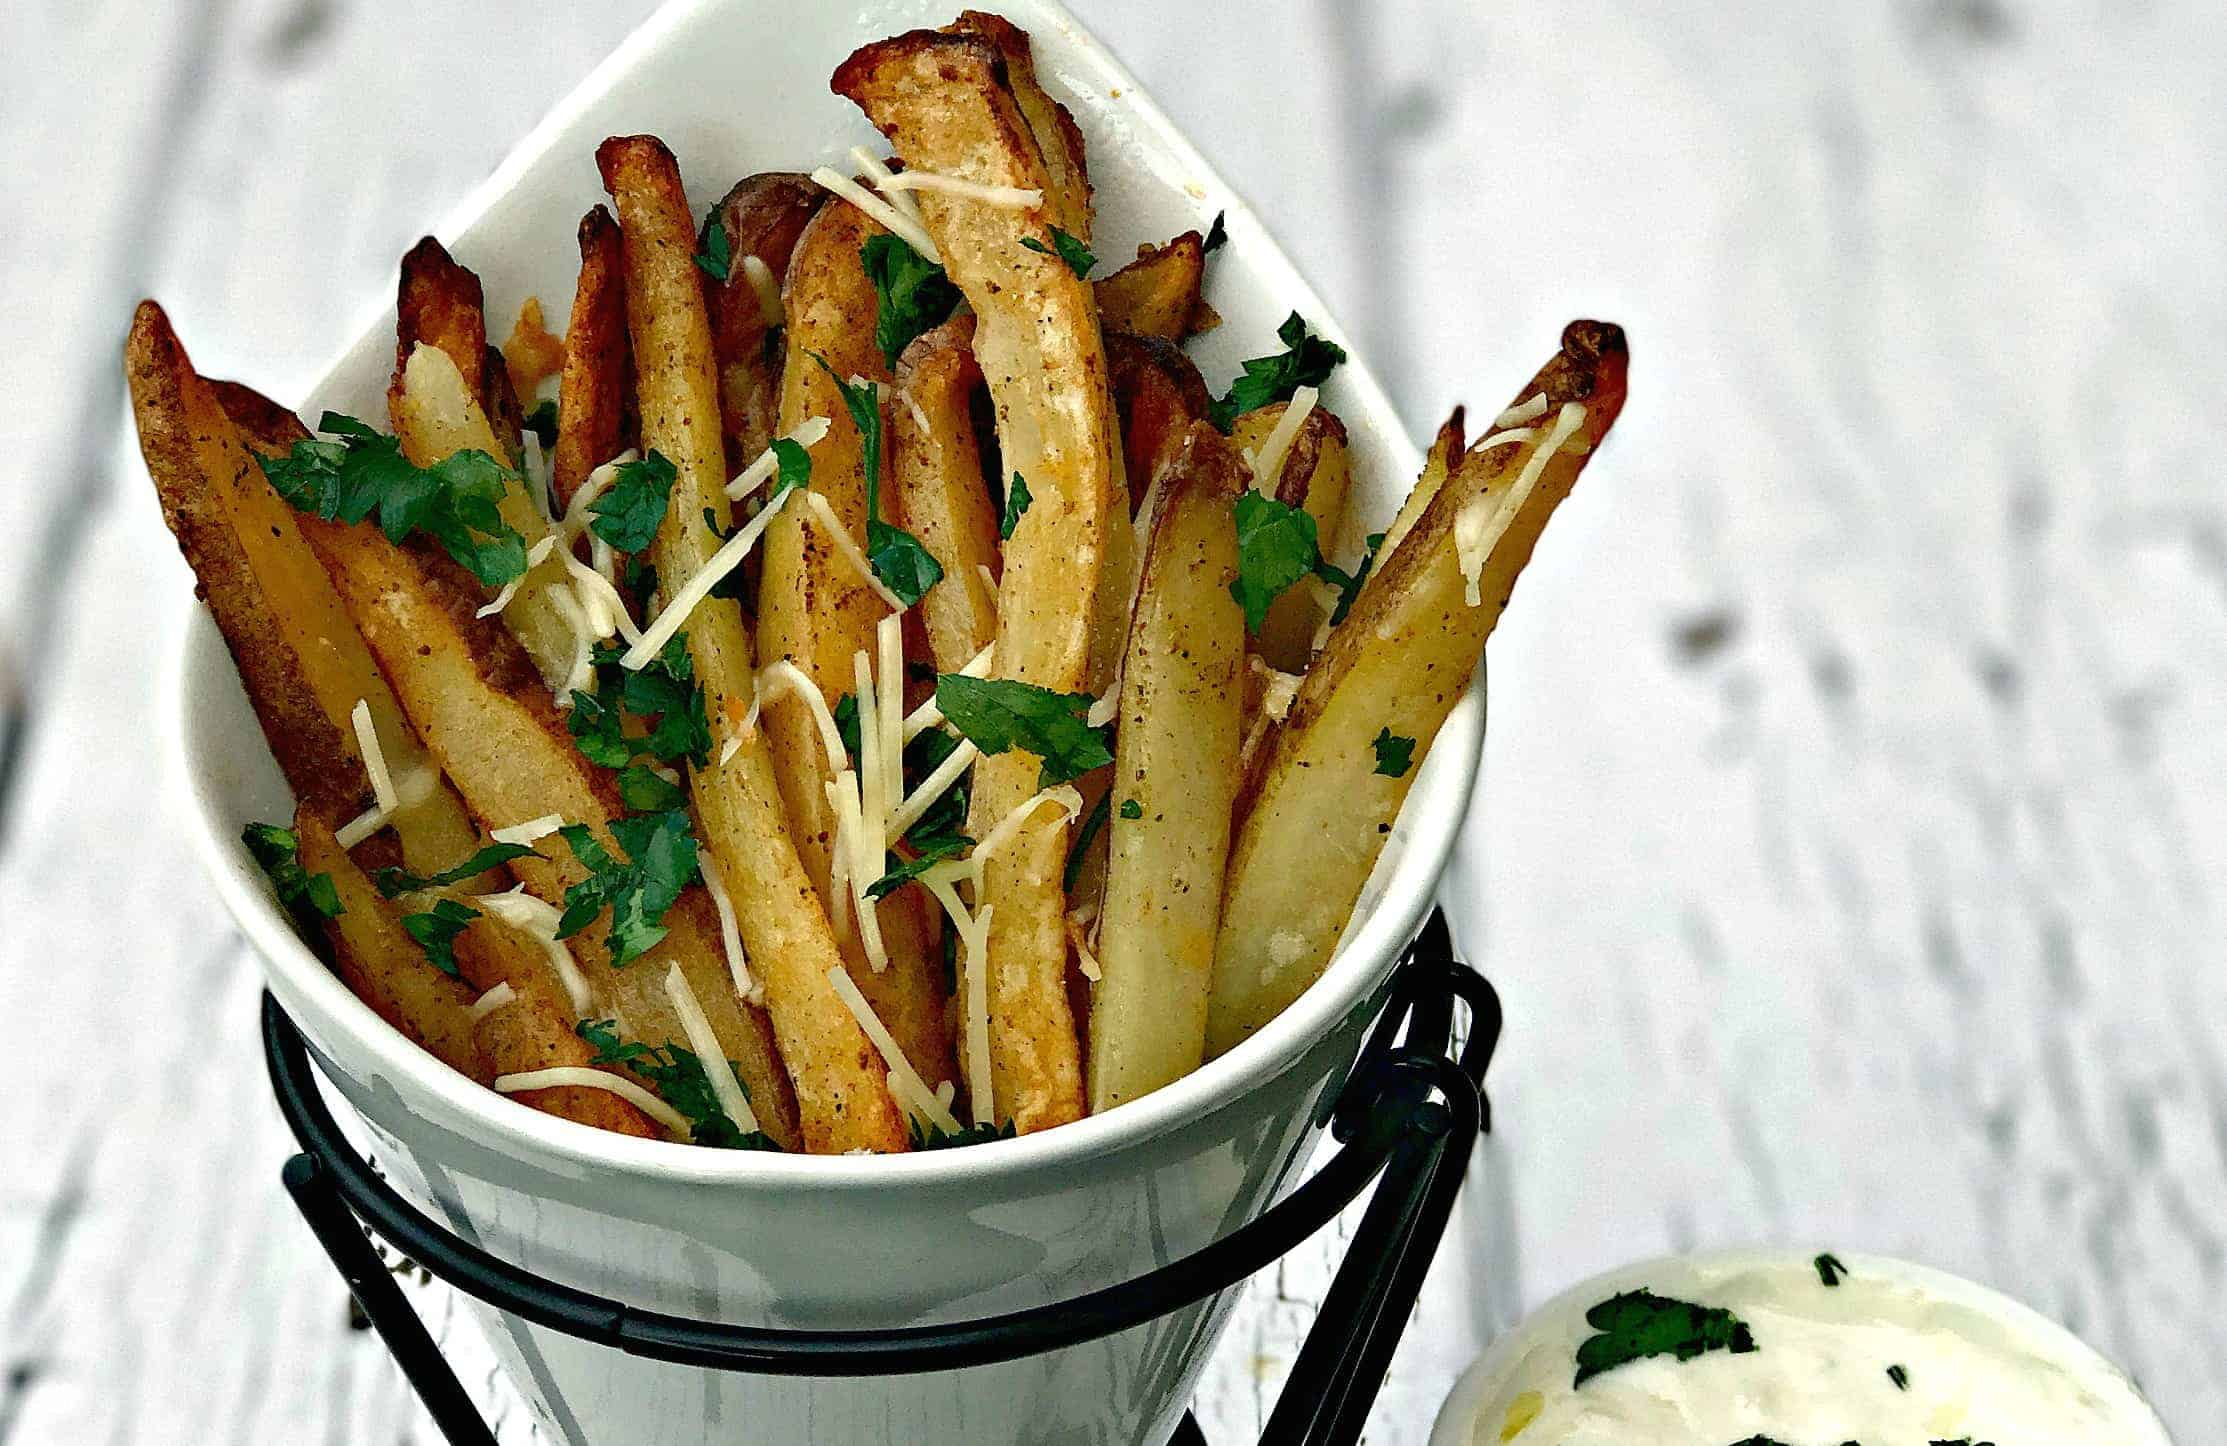 parmesan truffle oil fries in a french fry stand with truffle oil aioli